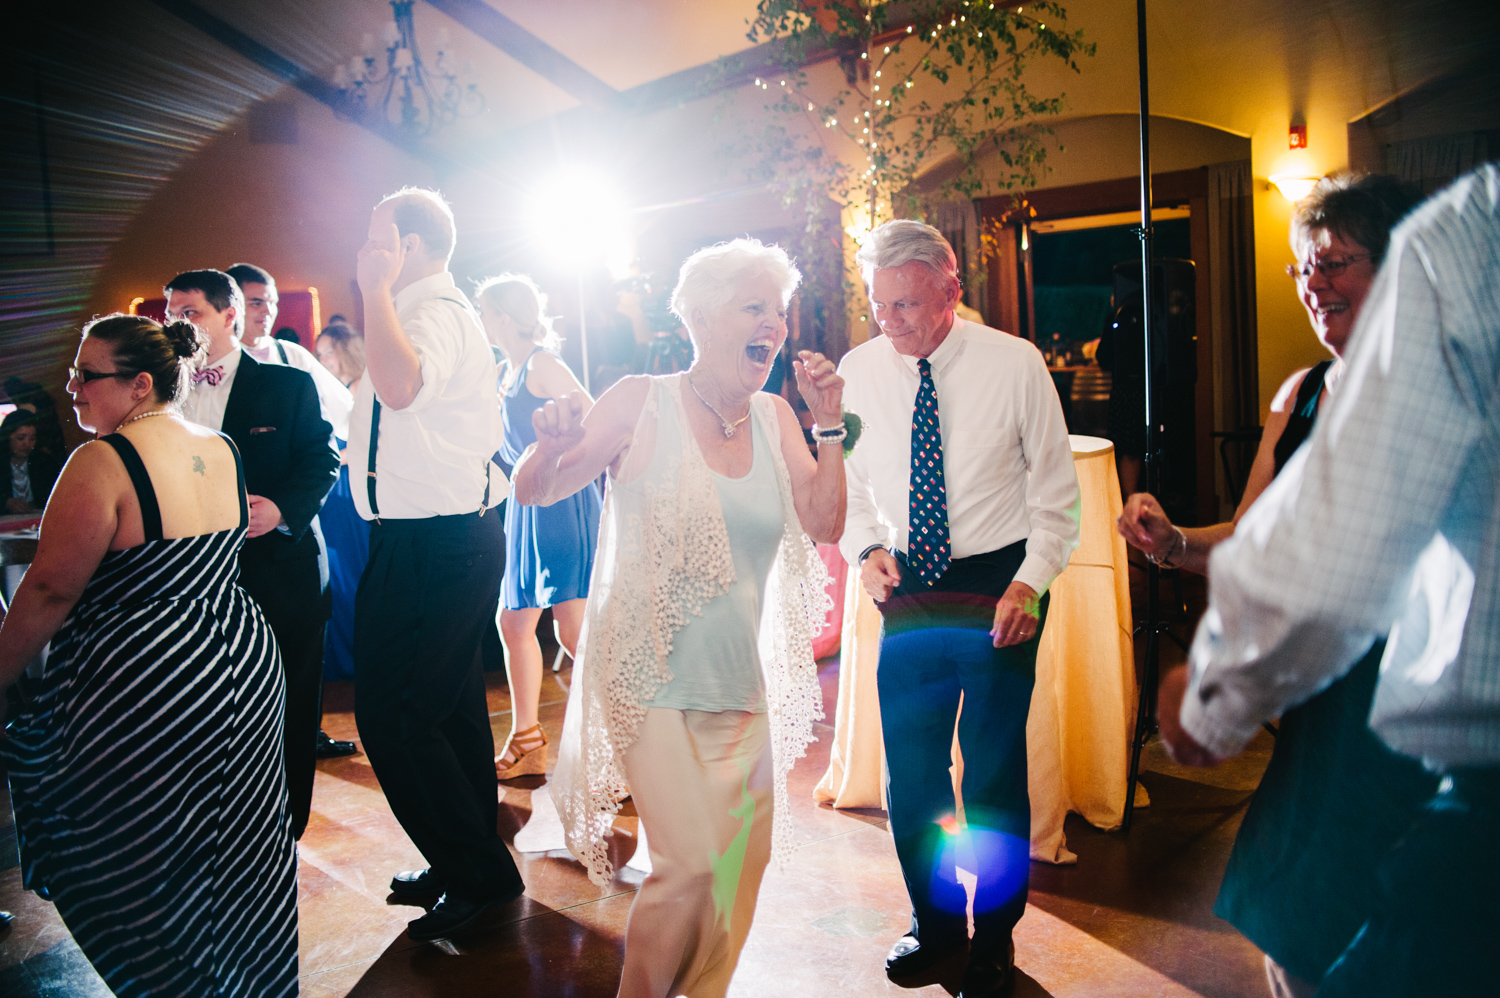 26-zenith-vineyard-wedding-portland-oregon-christa-taylor-photography.jpg